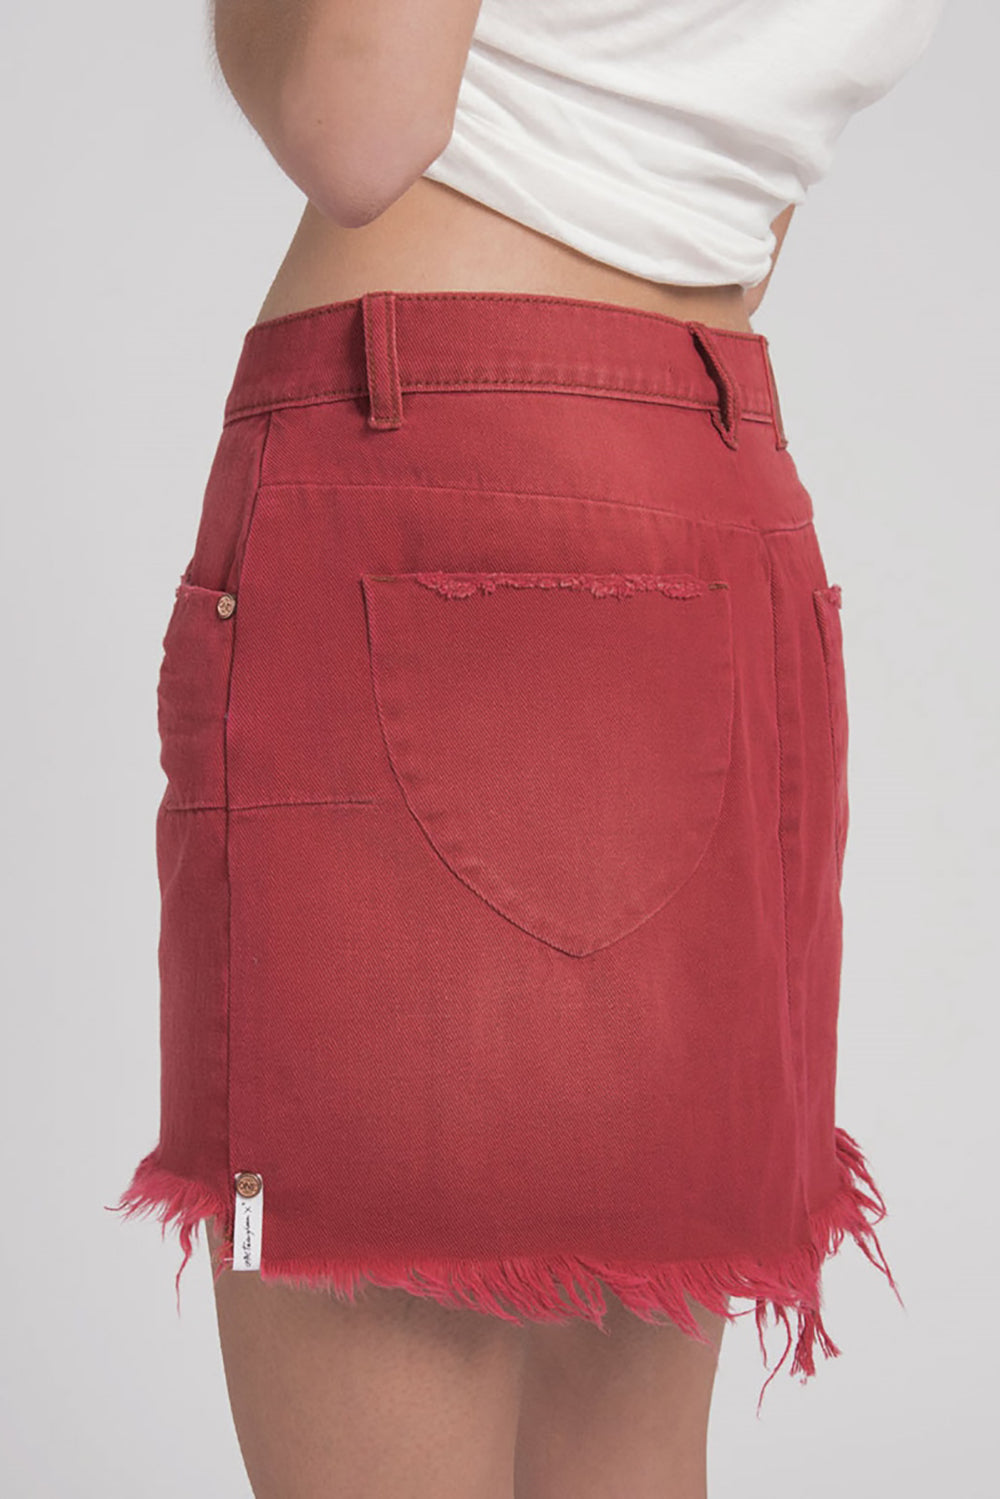 One Teaspoon Vanguard Mid Rise Skirt in Red Envy- Final Sale